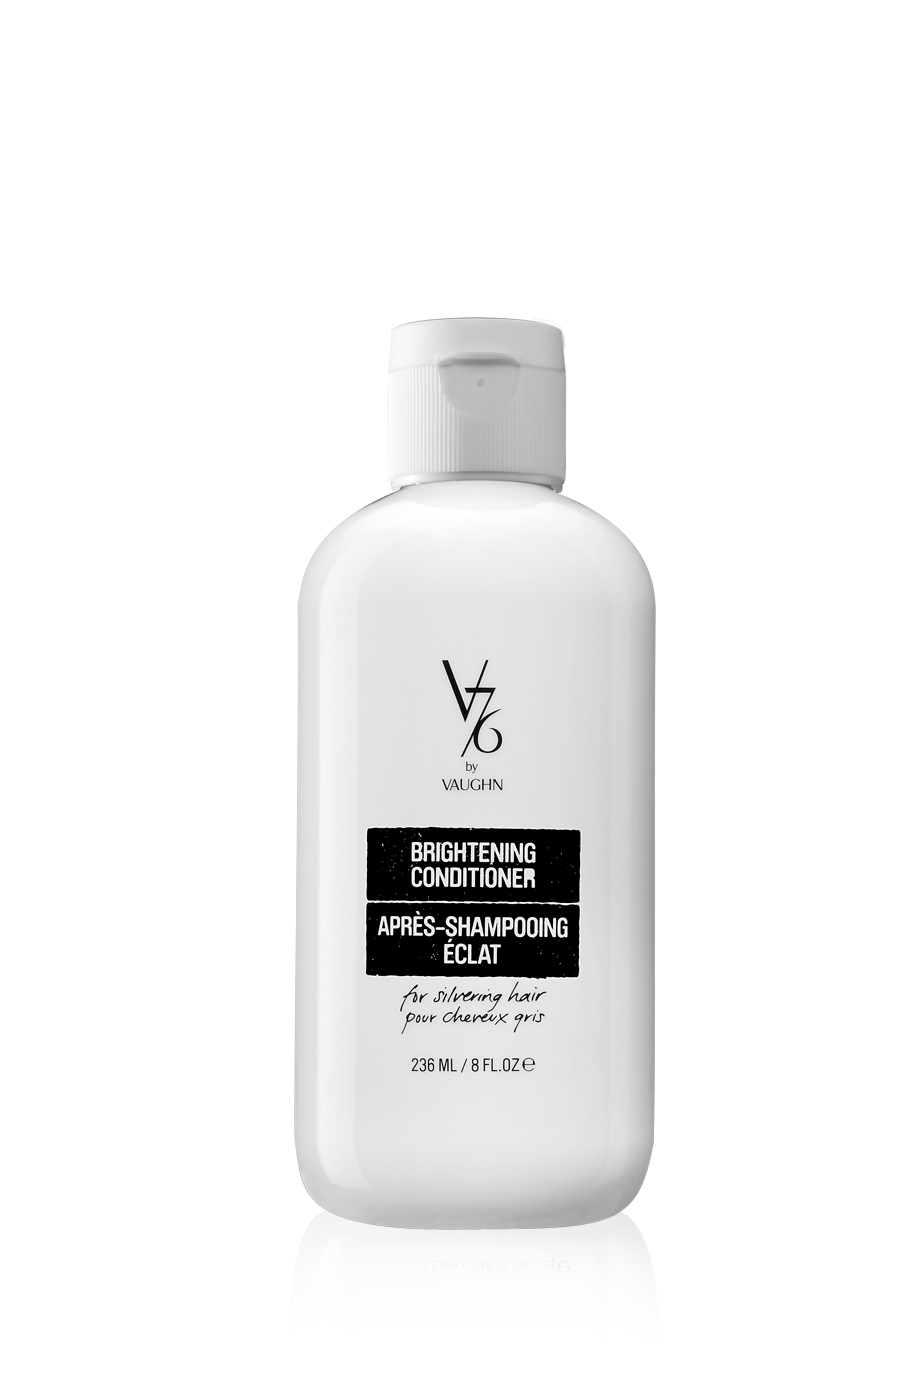 Кондиционер Brightening for Silvering Hair в интернет-магазине Authentica.love